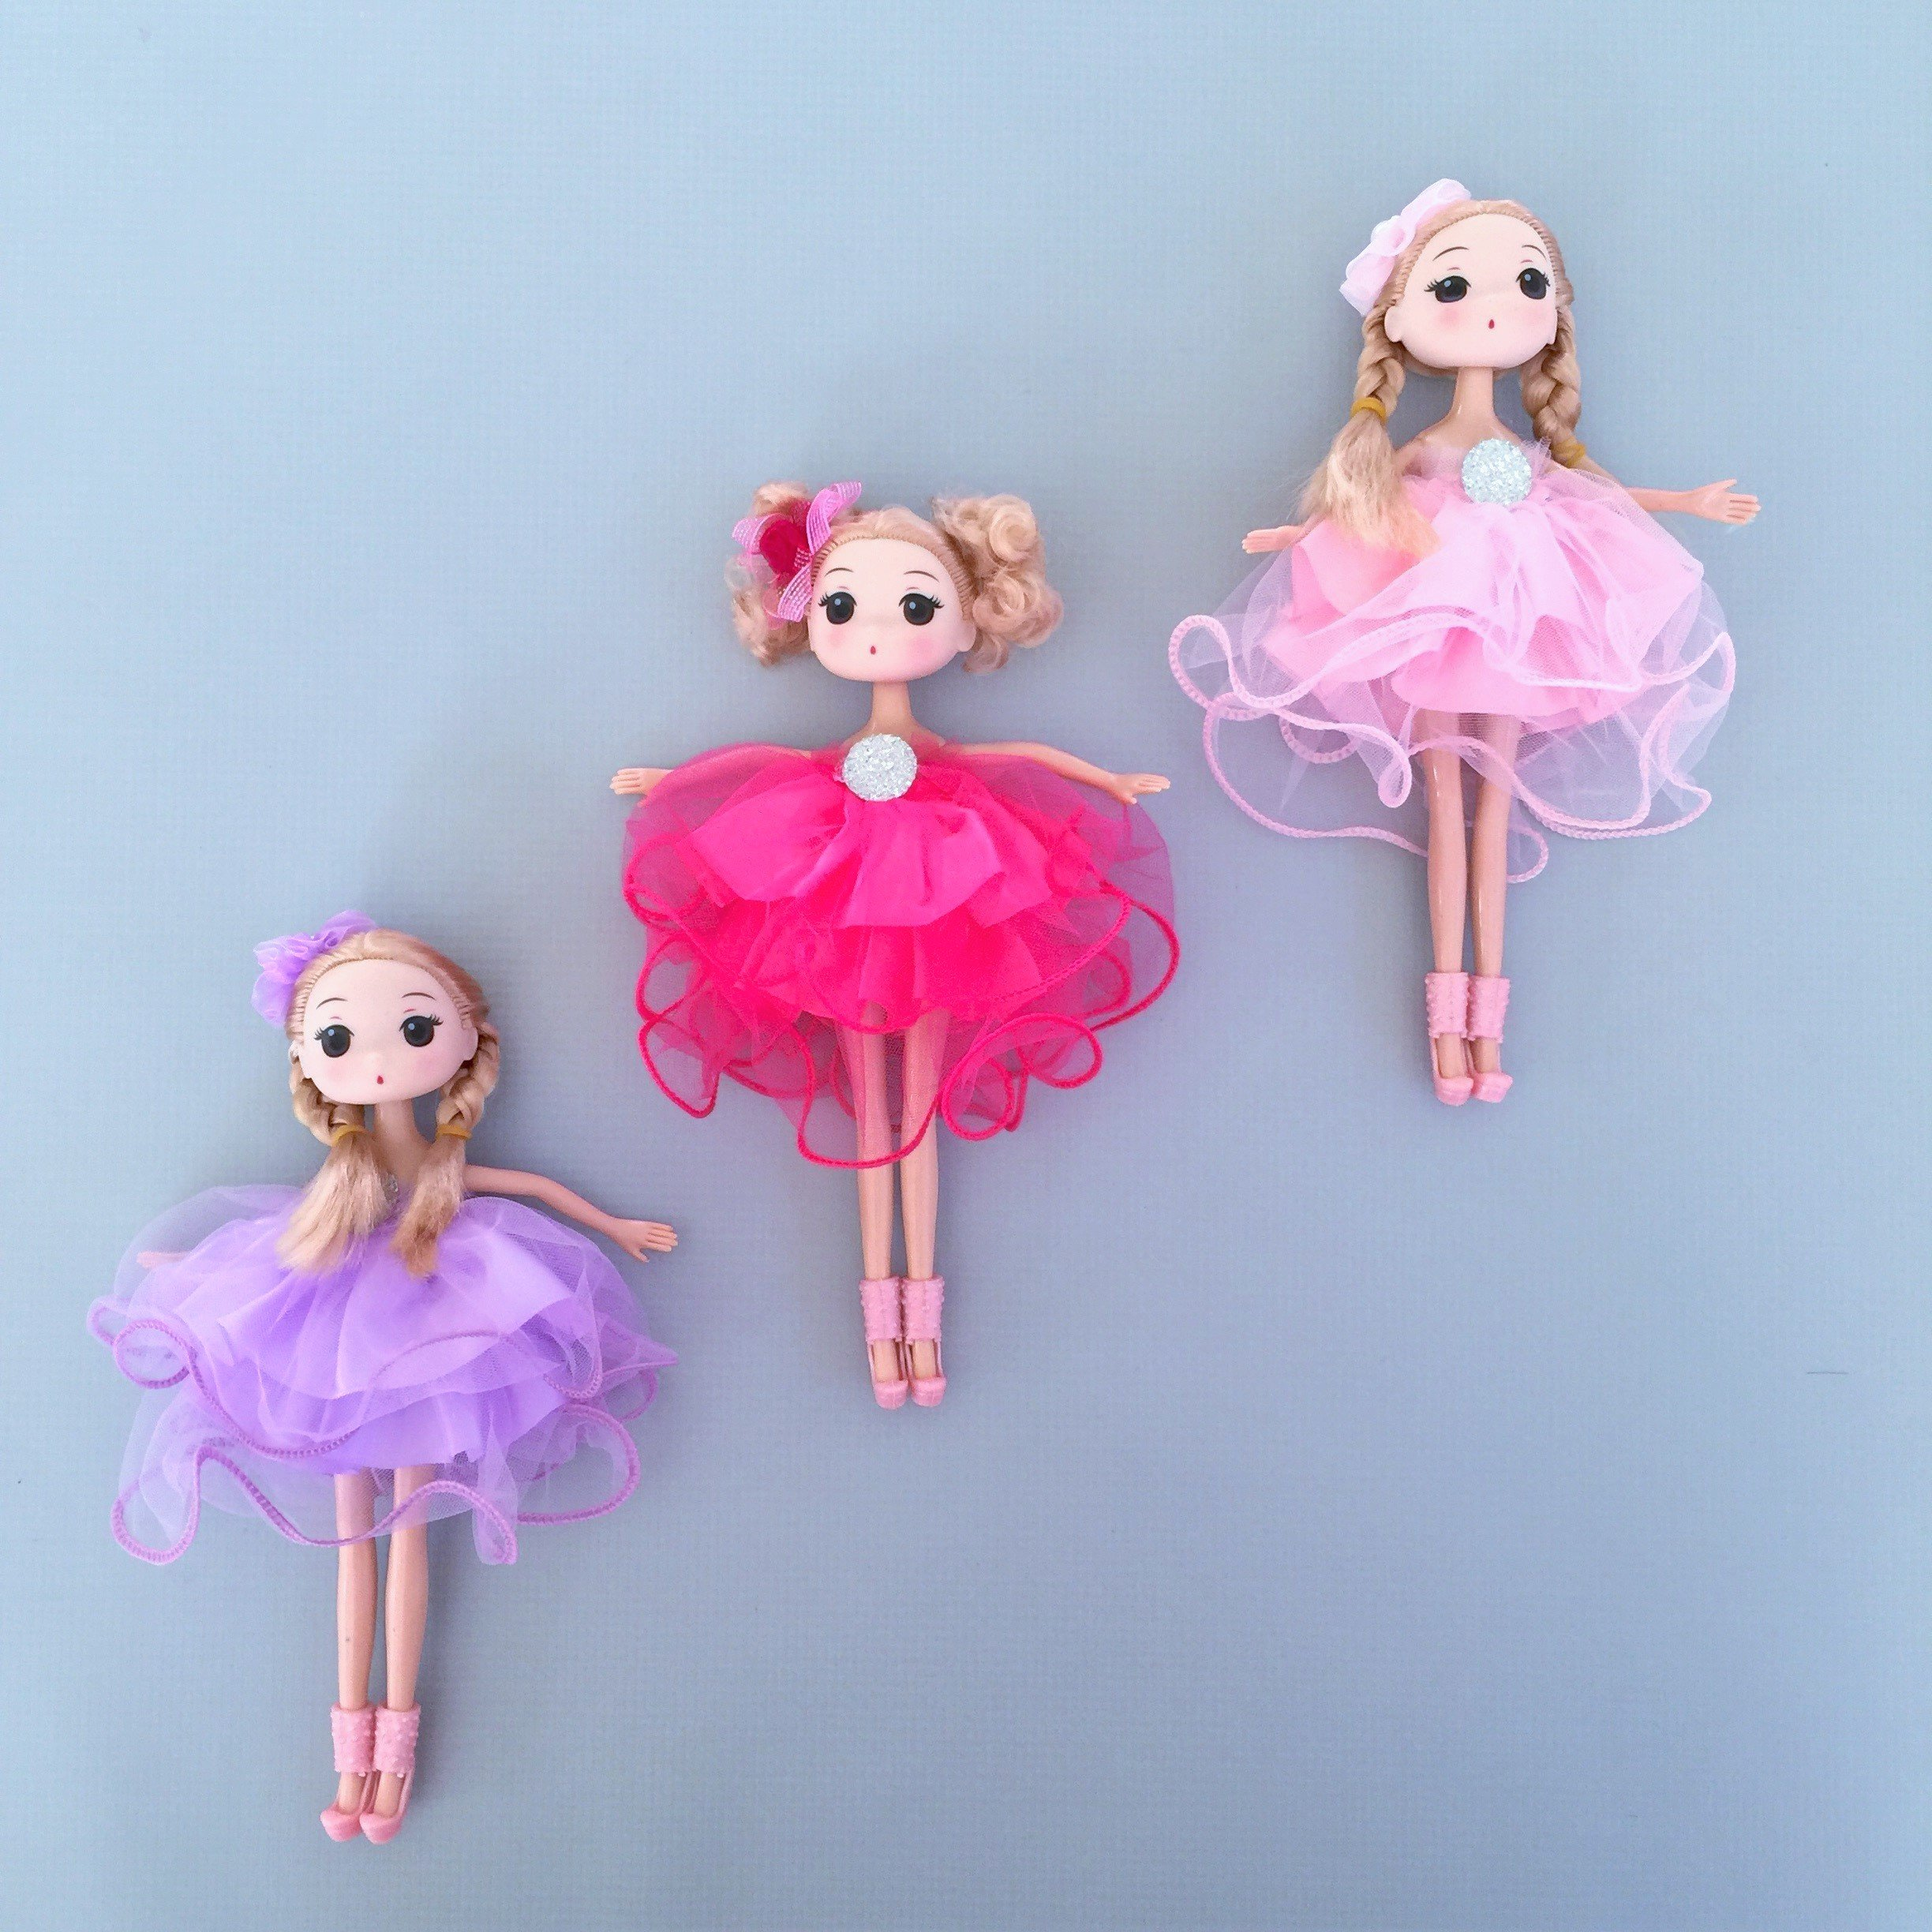 Ballerina Princess Doll Pack N Play Gift Set